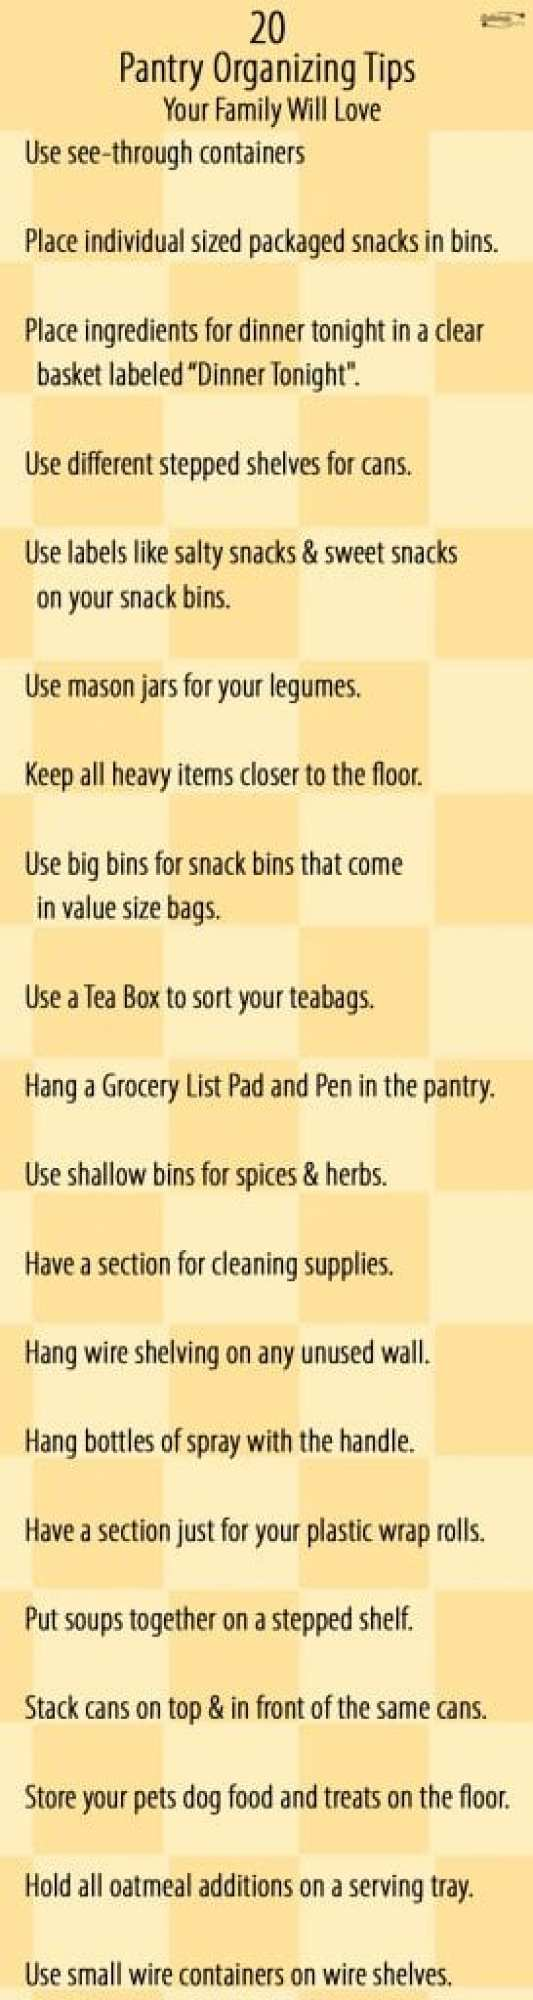 Top 20 Pantry Organizing Tips Your Family Will Love